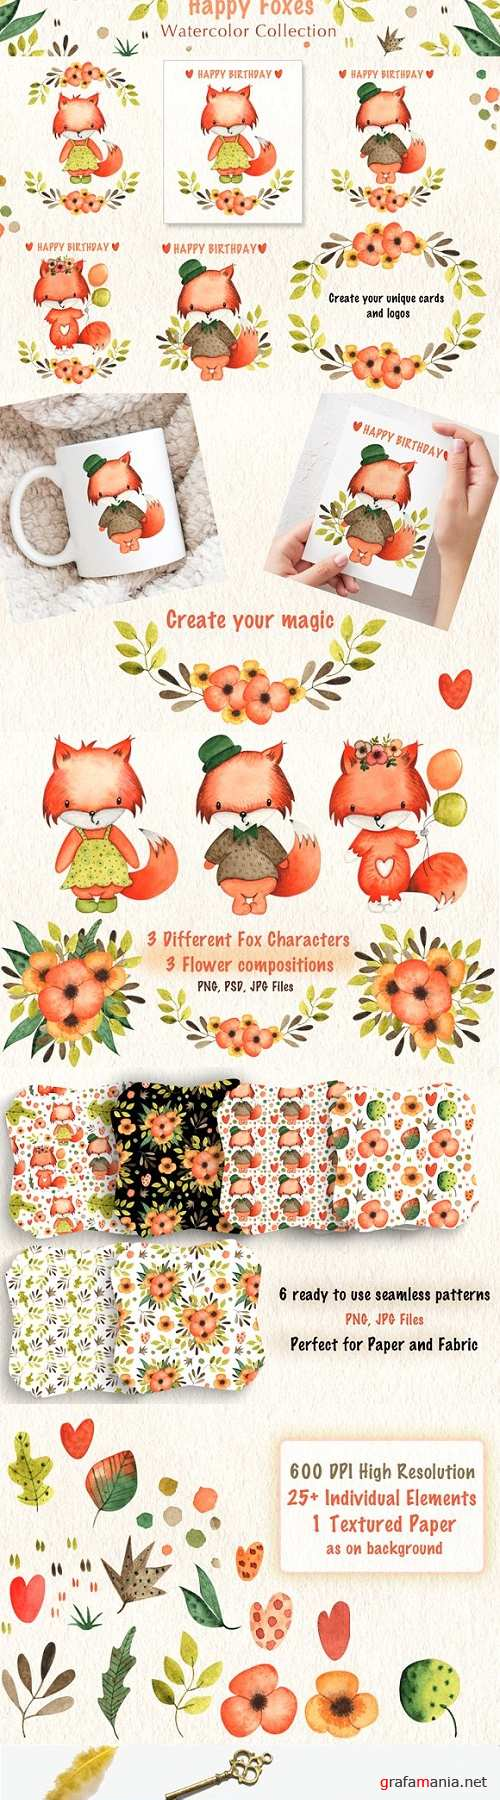 Happy Foxes Watercolor Collection - 3369221